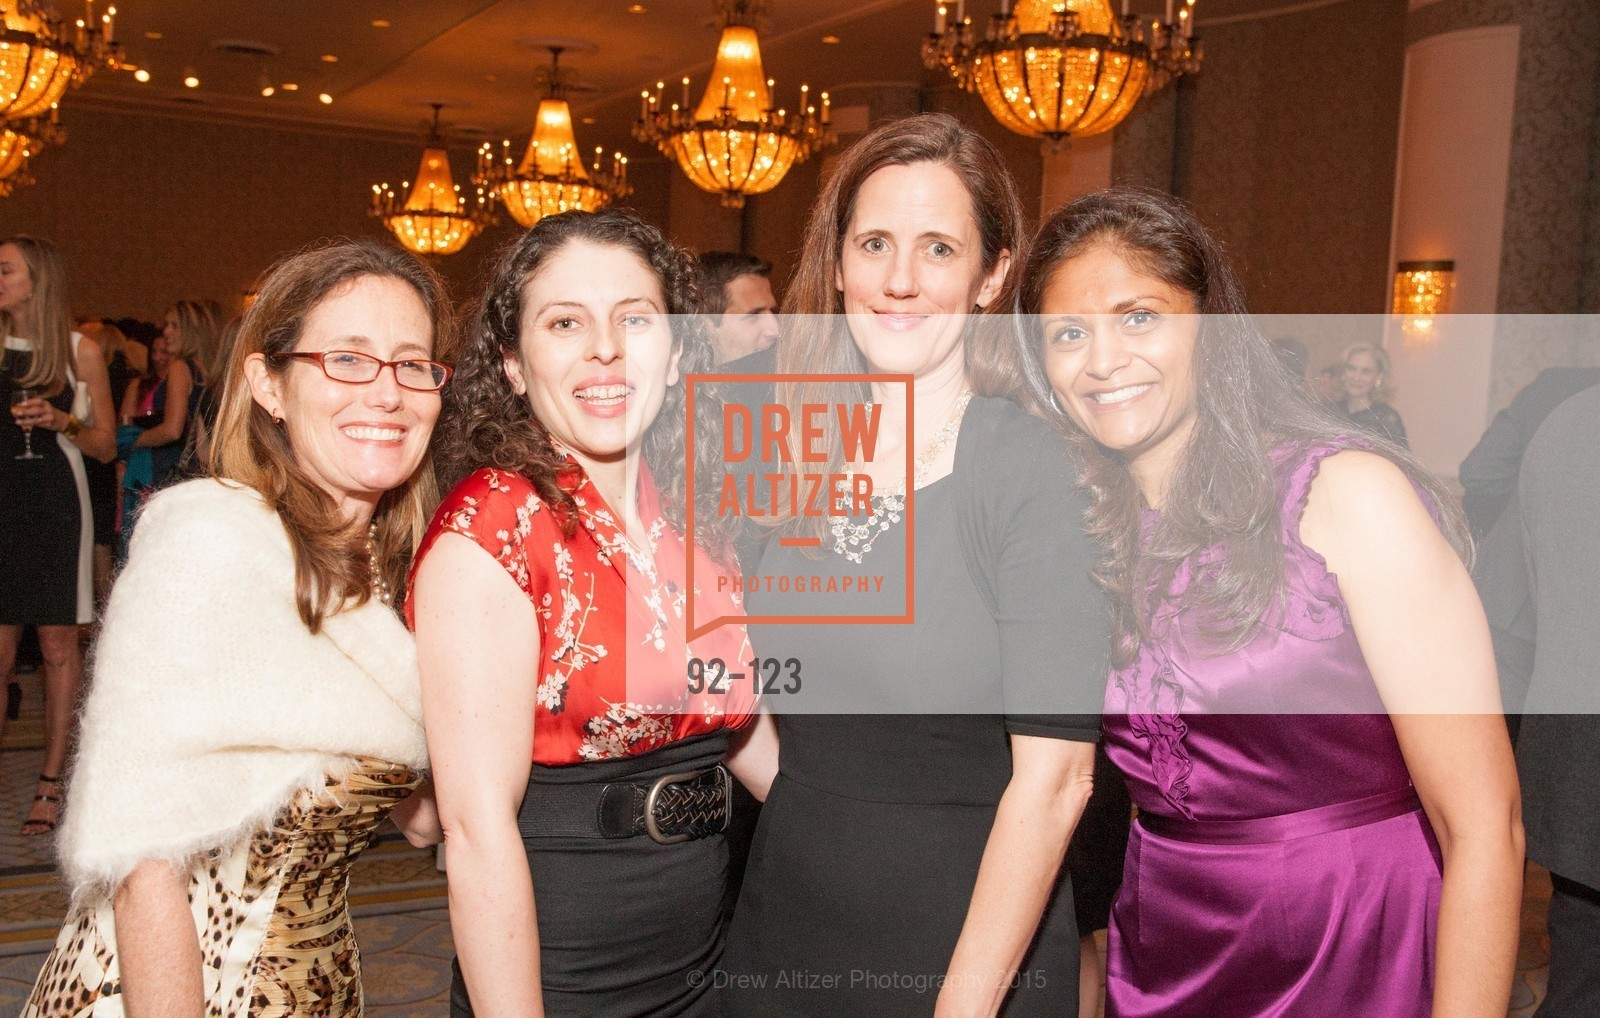 Dawn Duff, Melissa Gibson, Caitlyn Sims, Hazel Patel, 2015 Boys and Girls Club Annual Gala, The Fairmont San Francisco. 950 Mason St, May 20th, 2015,Drew Altizer, Drew Altizer Photography, full-service agency, private events, San Francisco photographer, photographer california